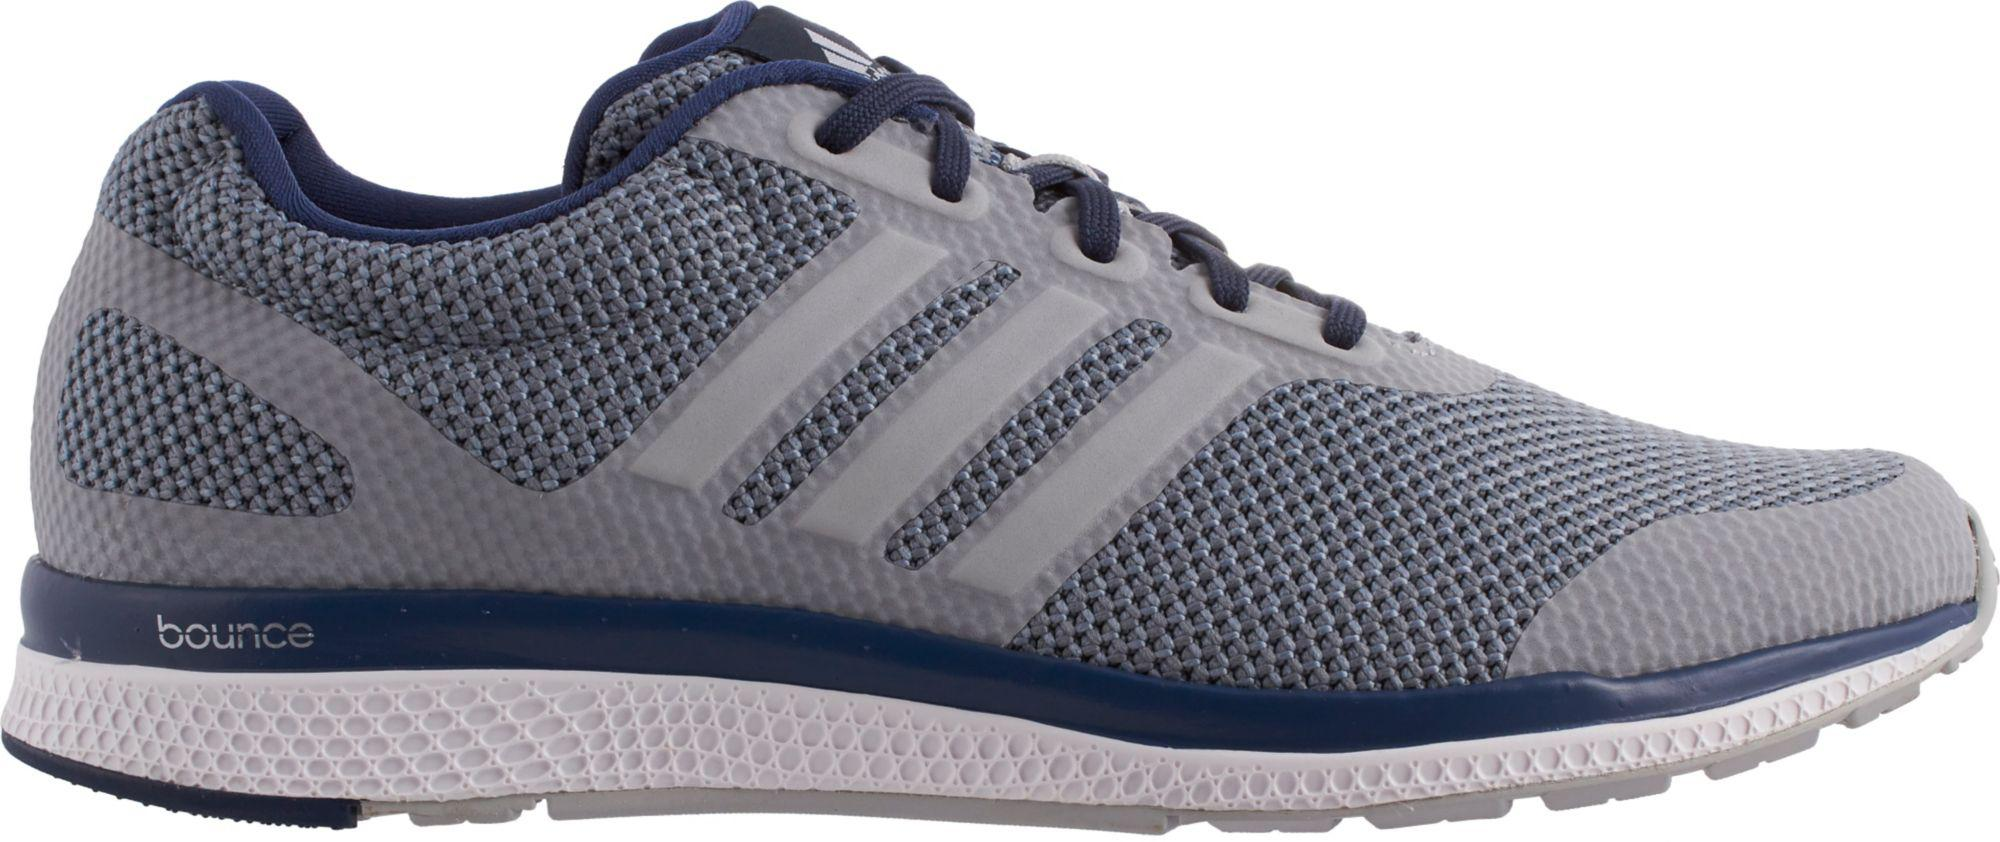 663e62e41d ... buy  look for Lyst - Adidas Mana Bounce Running Shoes in Gray for Men  87edb 4136b ...